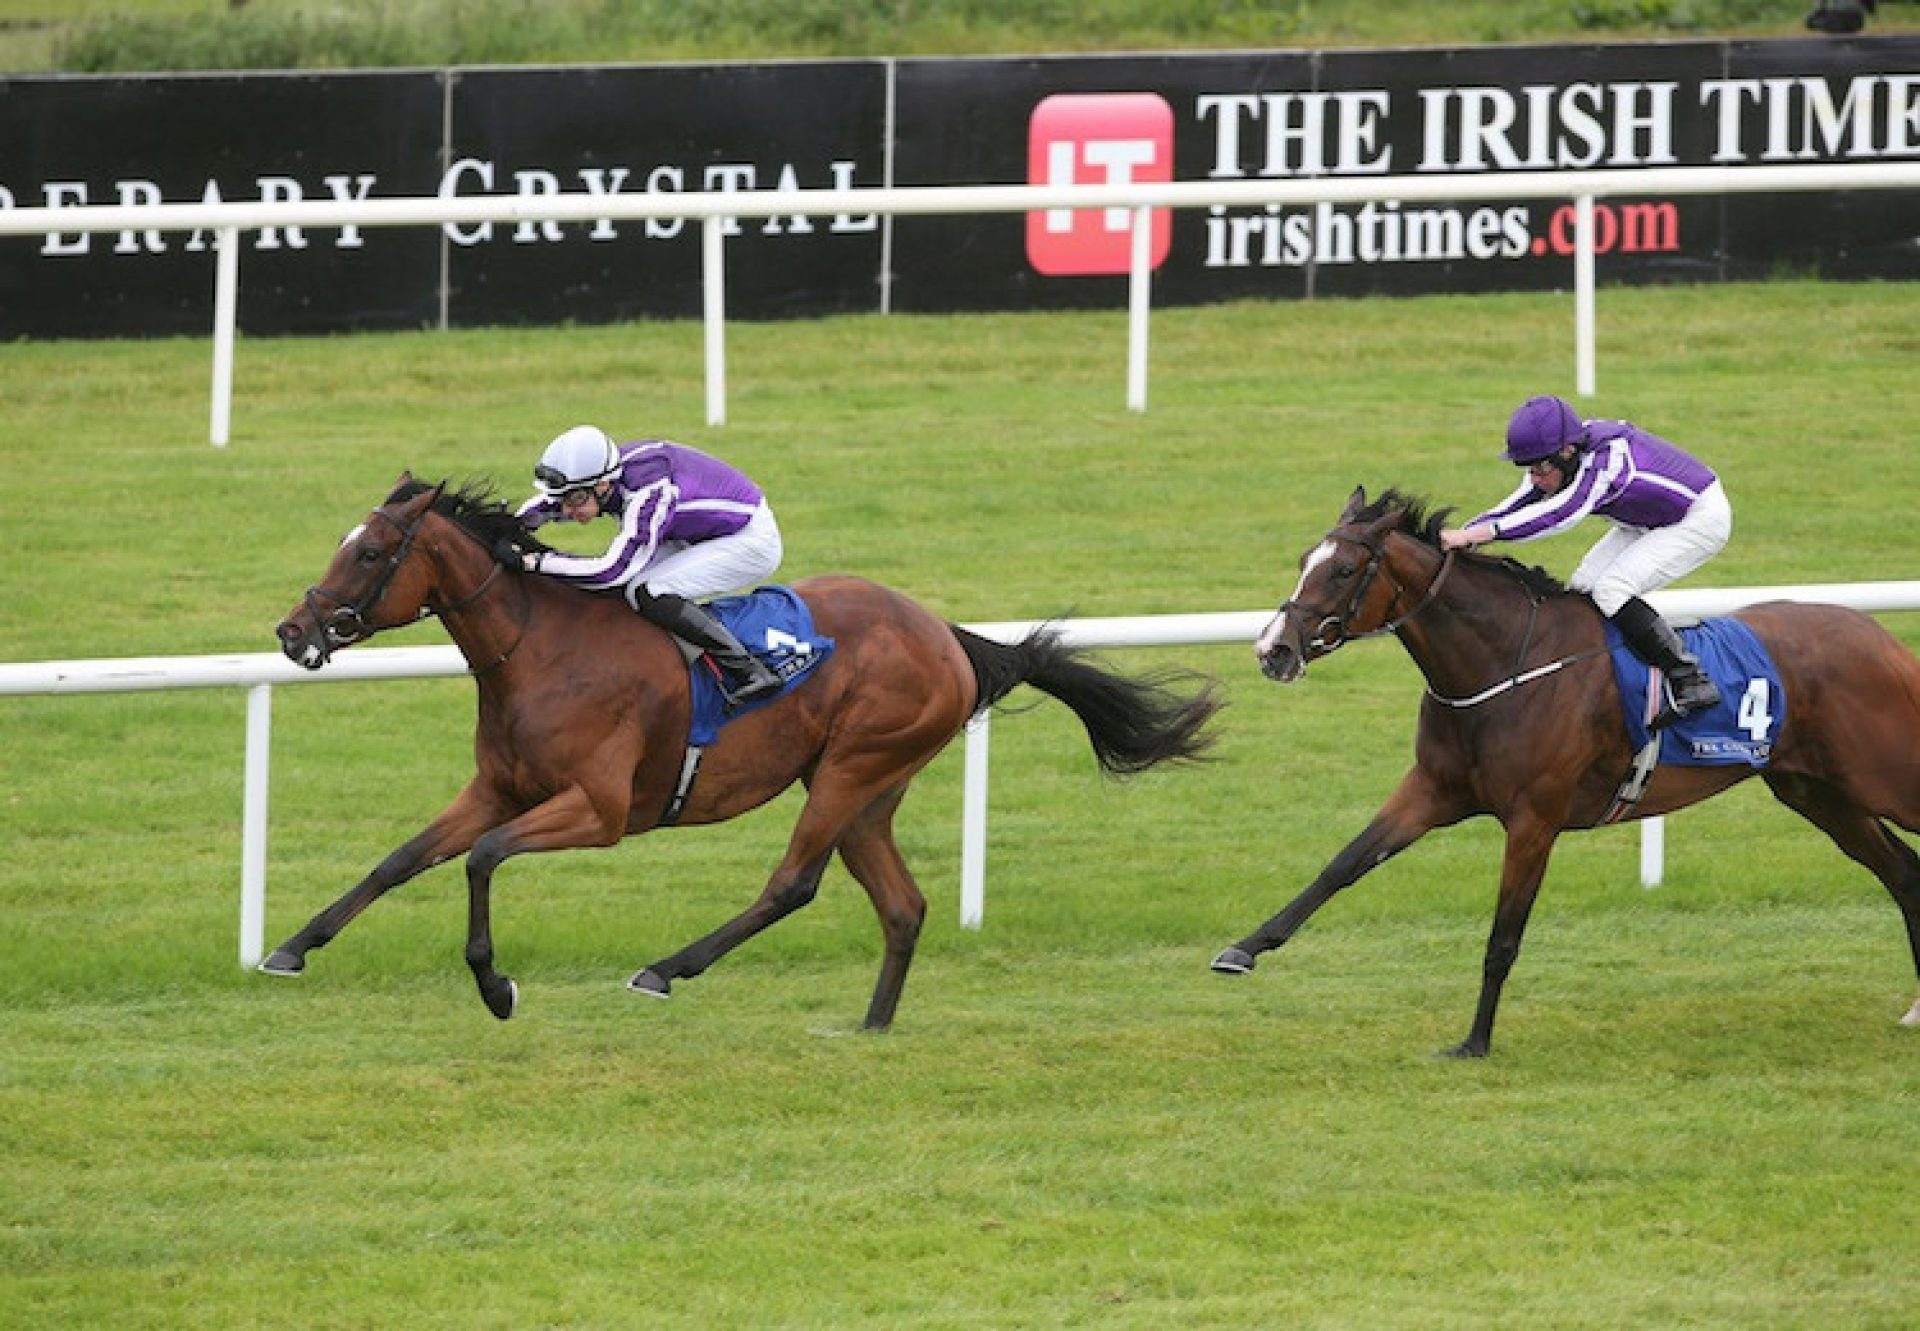 Magical (Galileo) winning the G2 Debutante Stakes at the Curragh